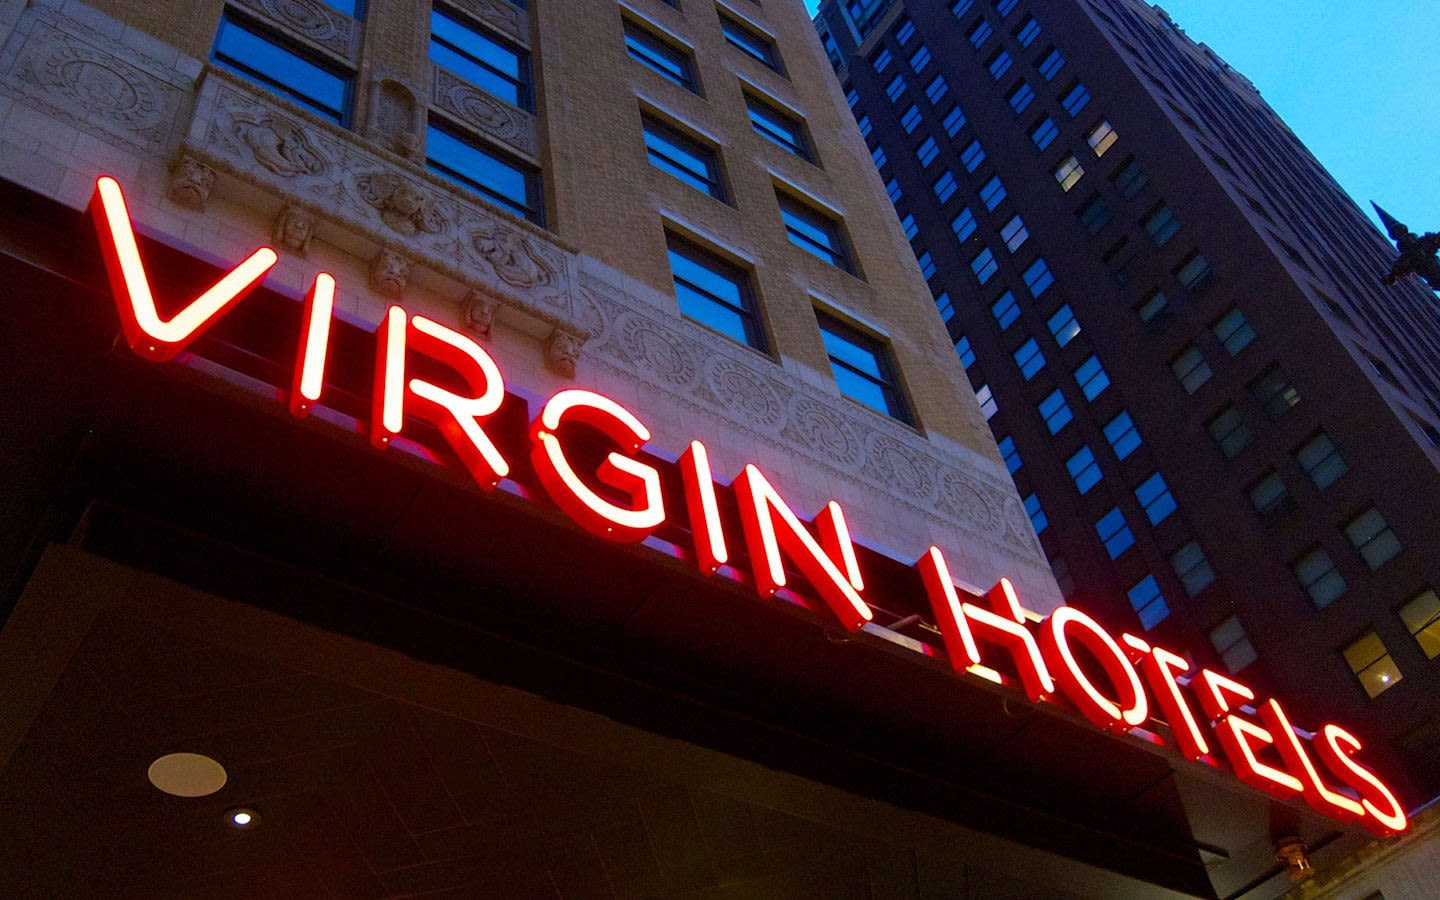 Picture from a view point of looking up to a Virgin Hotel Sign